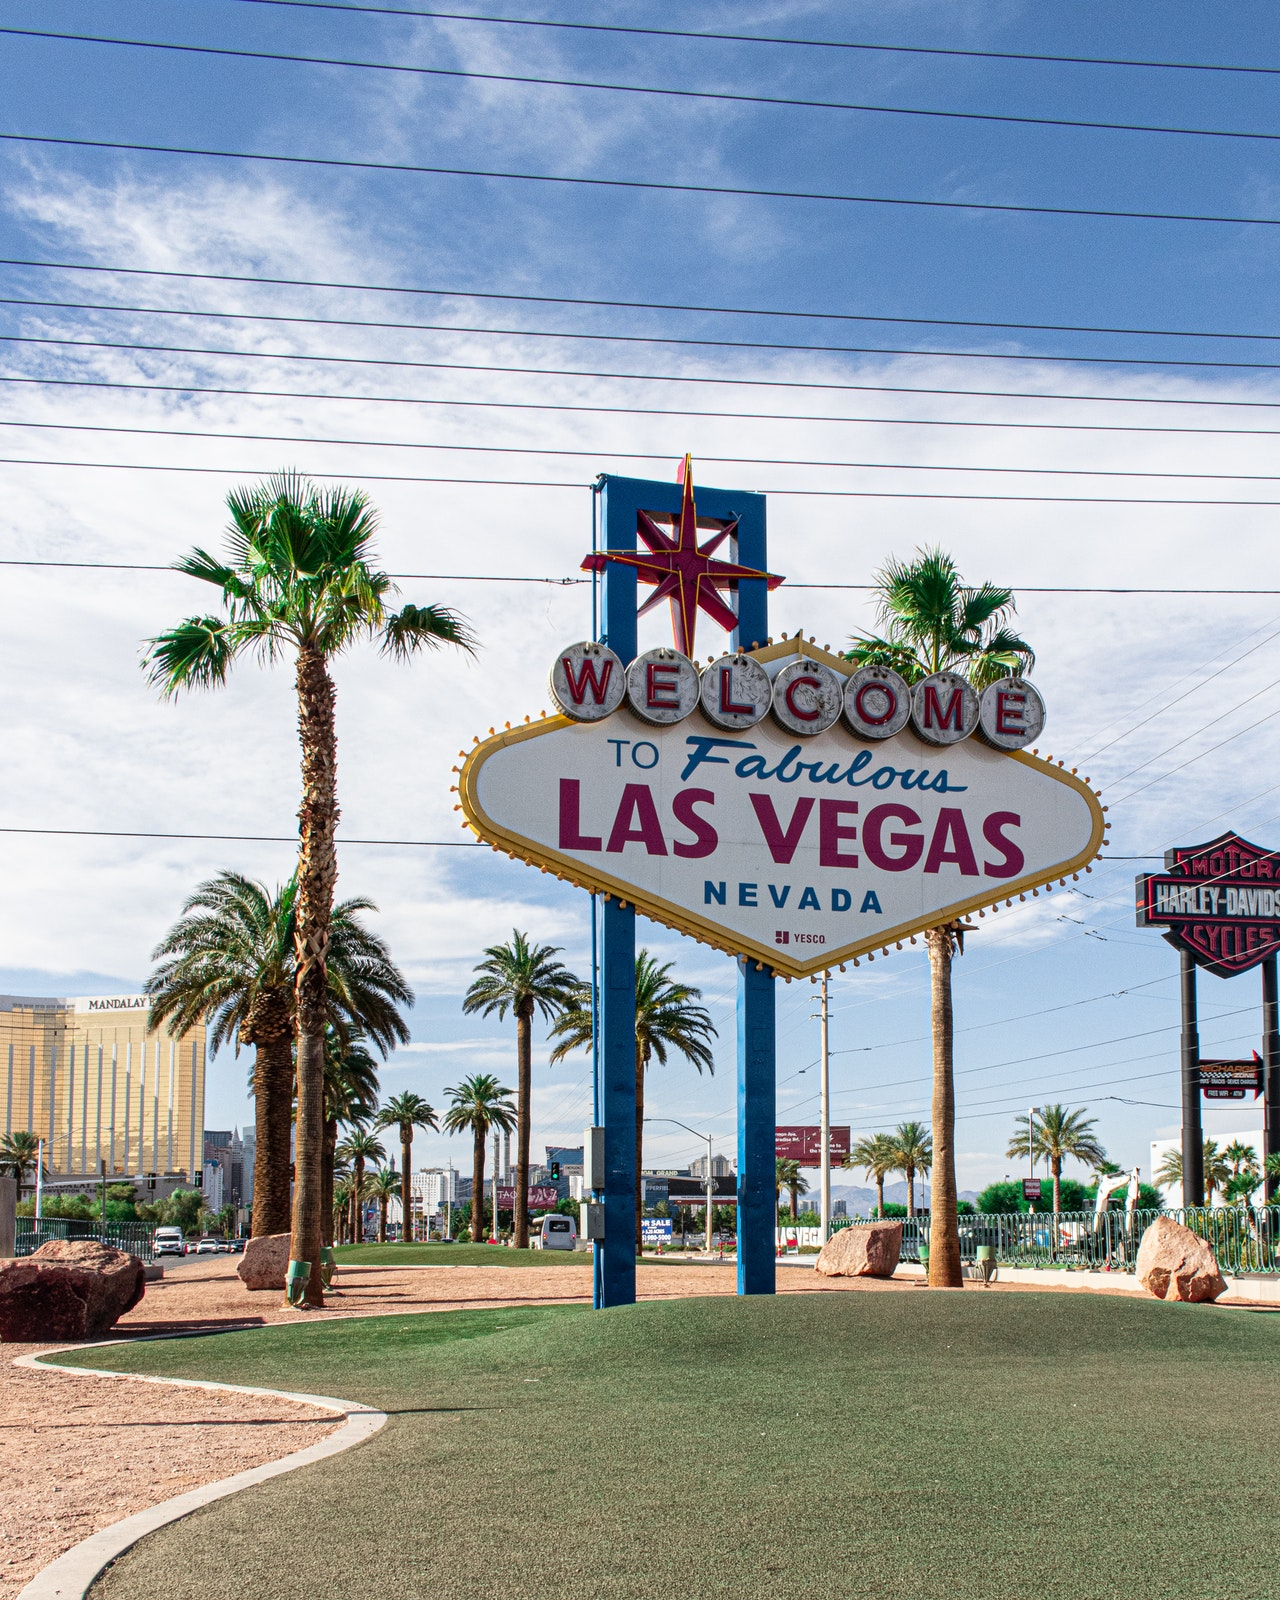 4 Off-the-Beaten Path Vegas Sites Kids Will Love